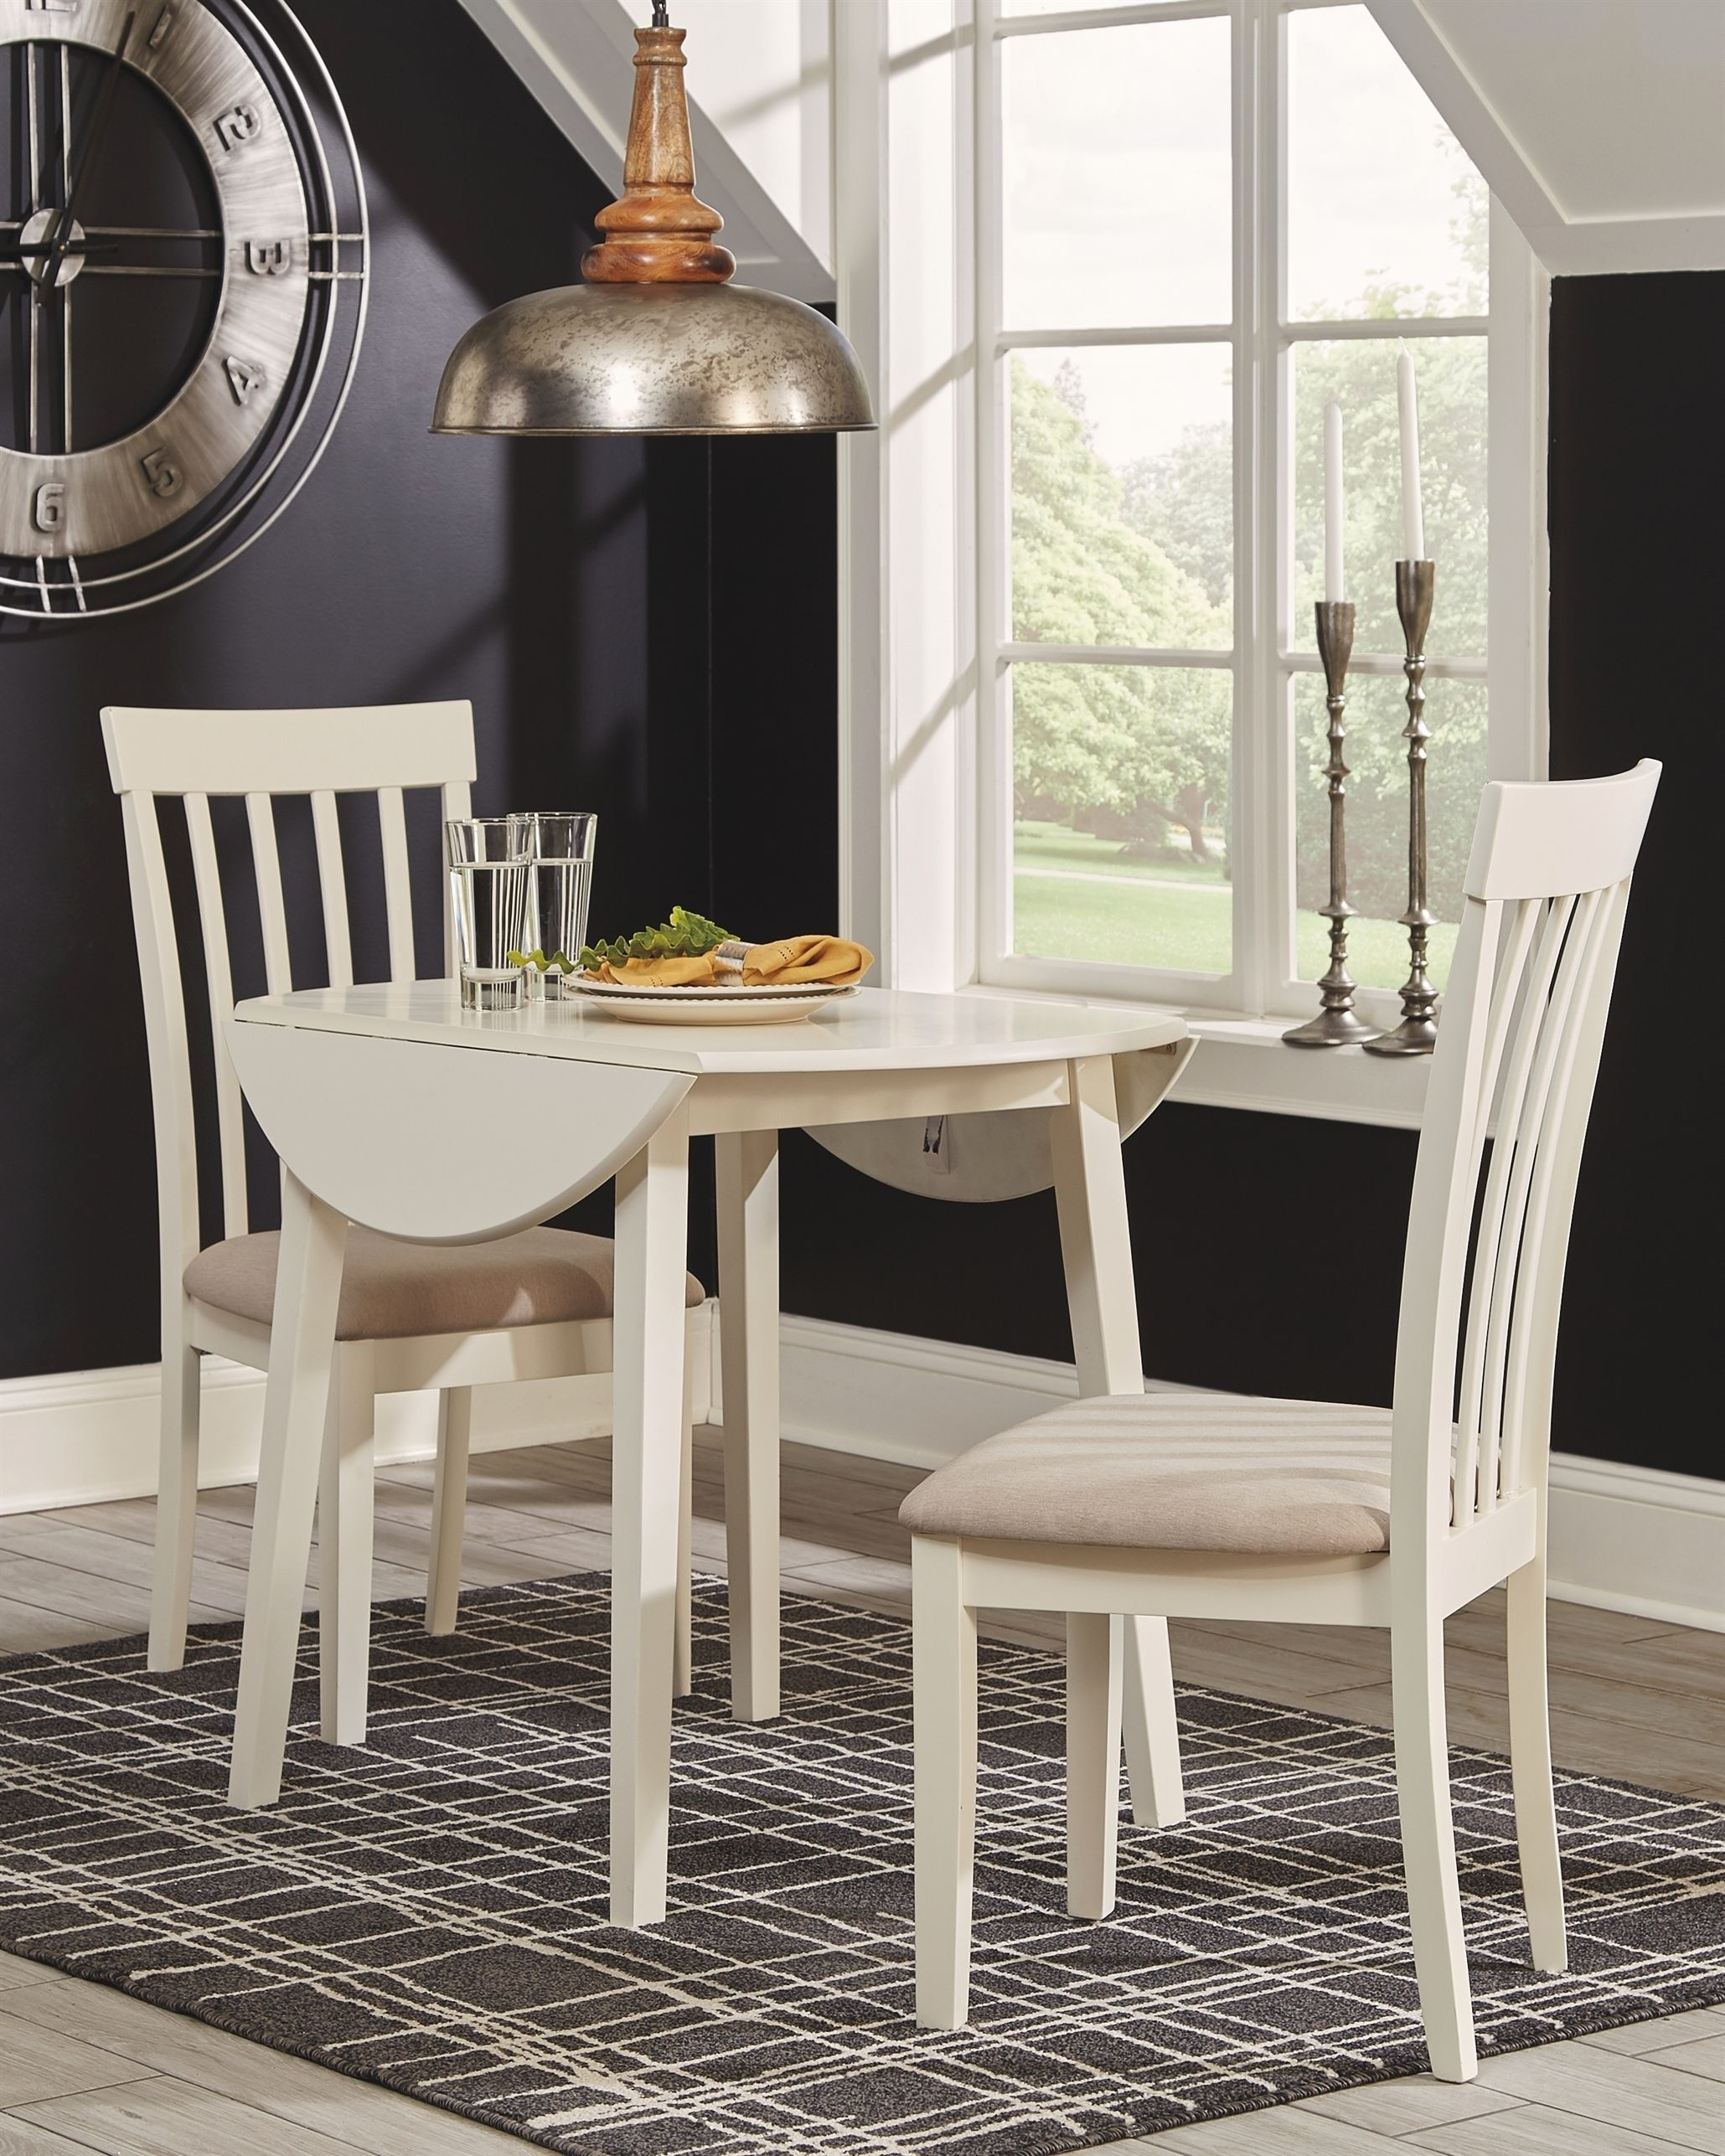 Slannery Dining Room Chair (Set Of 2), White #diningroomchairs Throughout Most Recent Palazzo 7 Piece Rectangle Dining Sets With Joss Side Chairs (View 12 of 20)